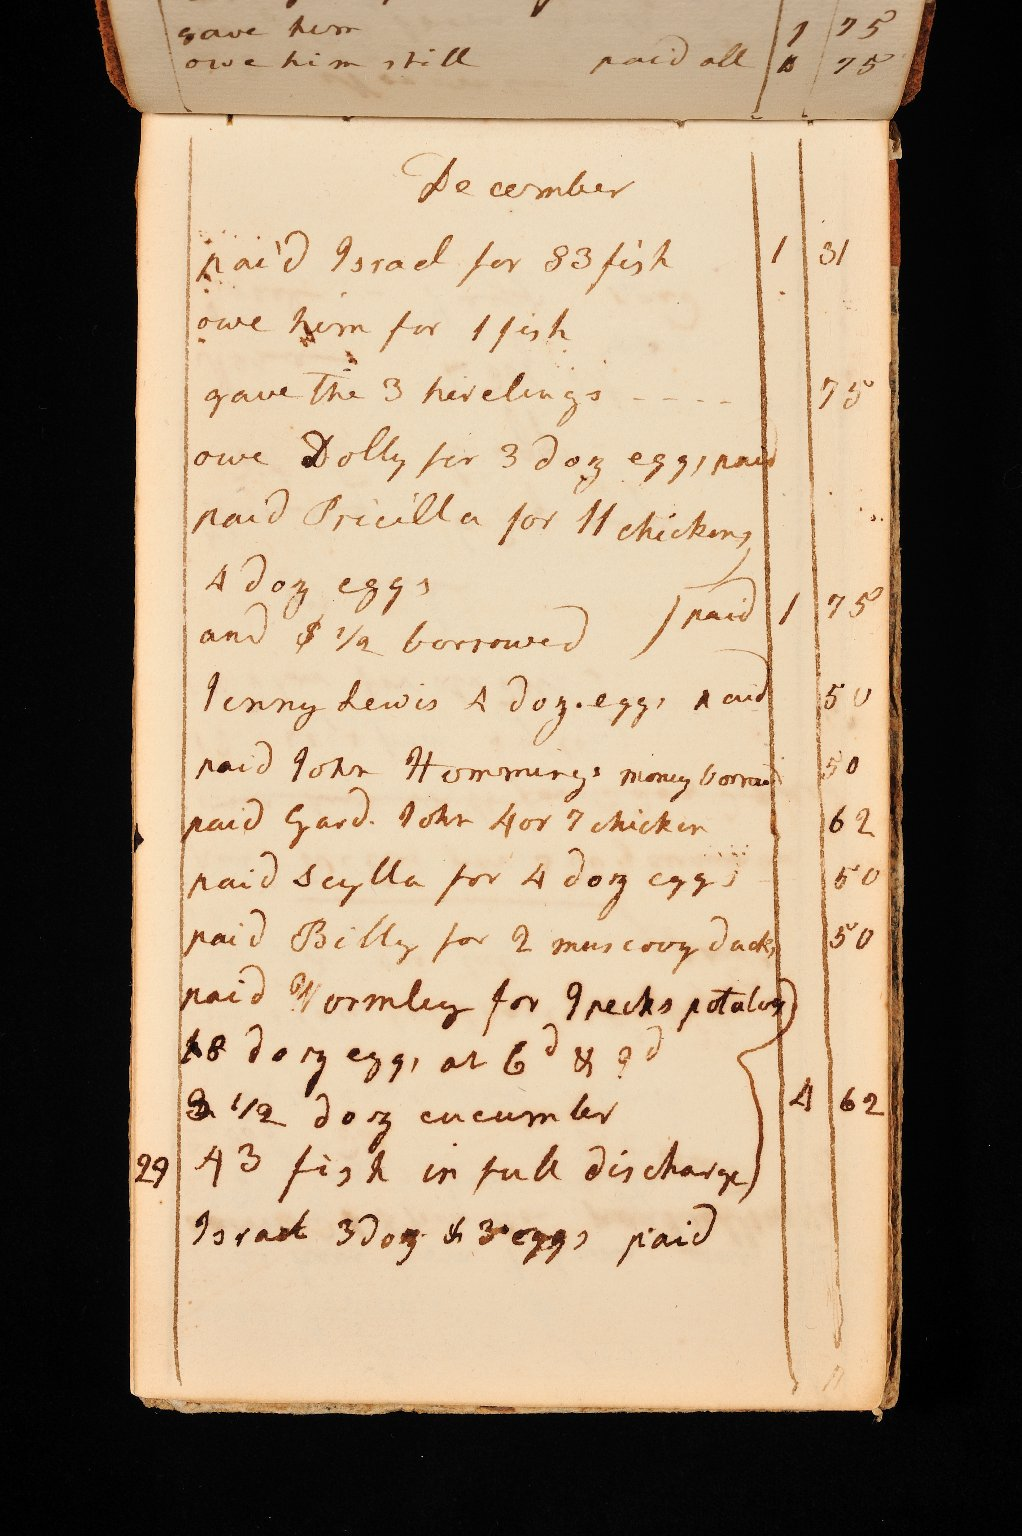 Account book, page 20